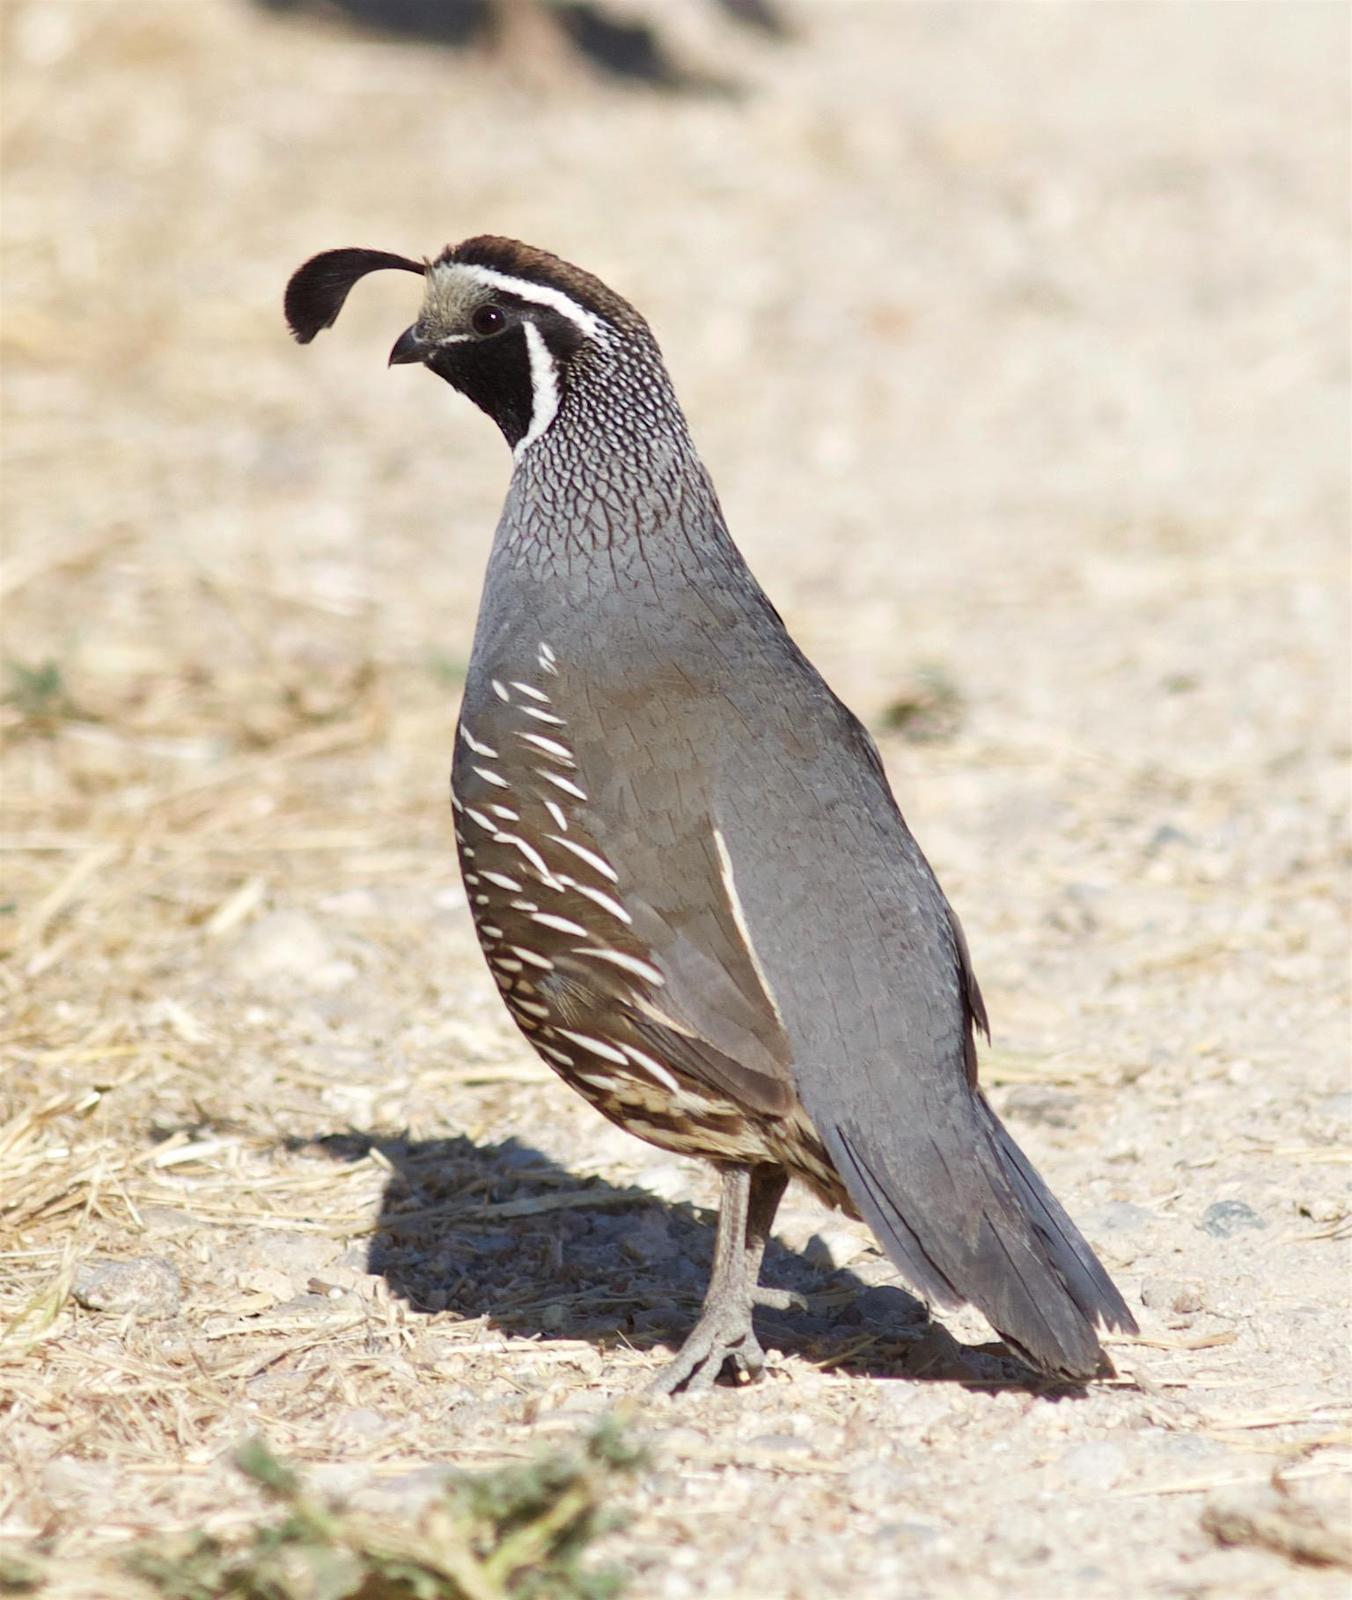 California Quail Photo by Kathryn Keith